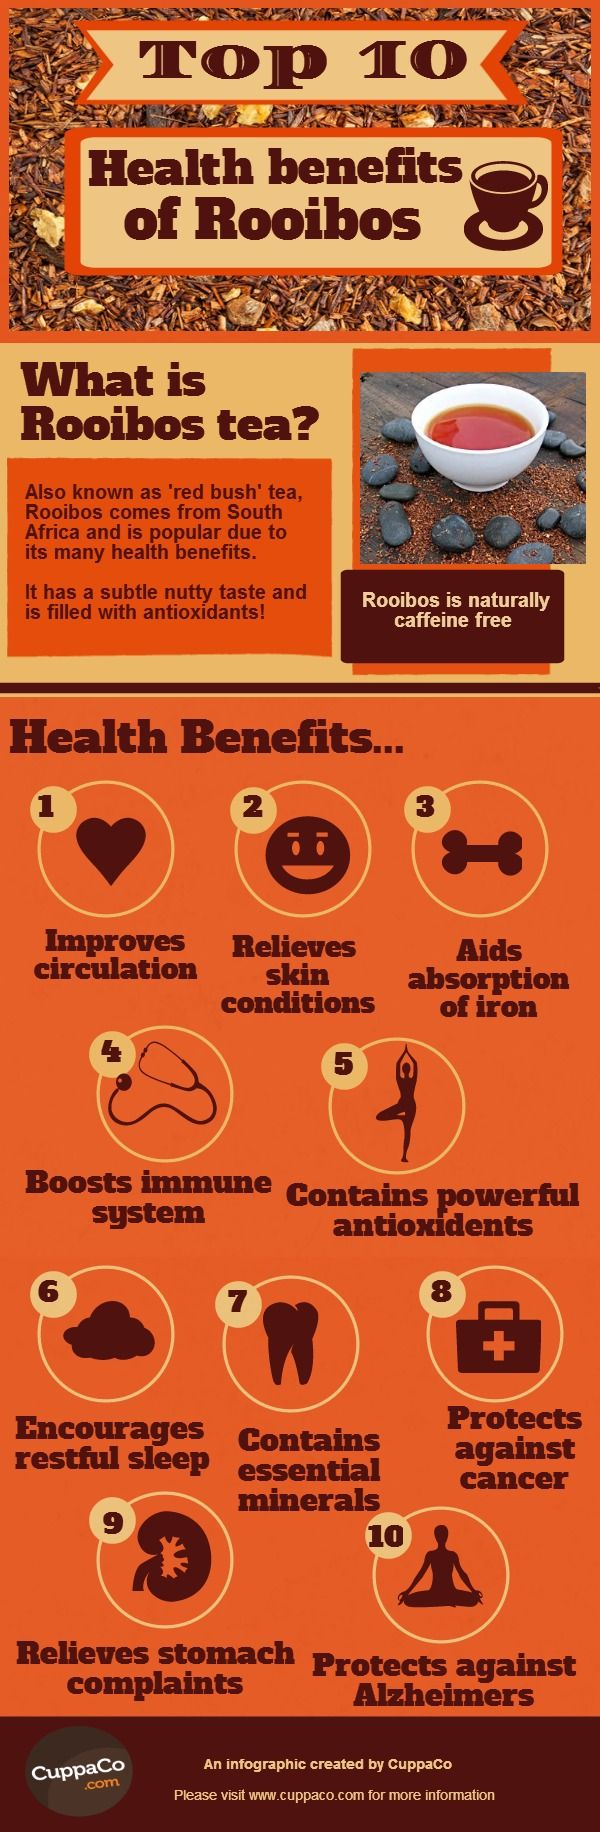 health-benefits-of-rooibos http://teapaus.com/all-about-tea/